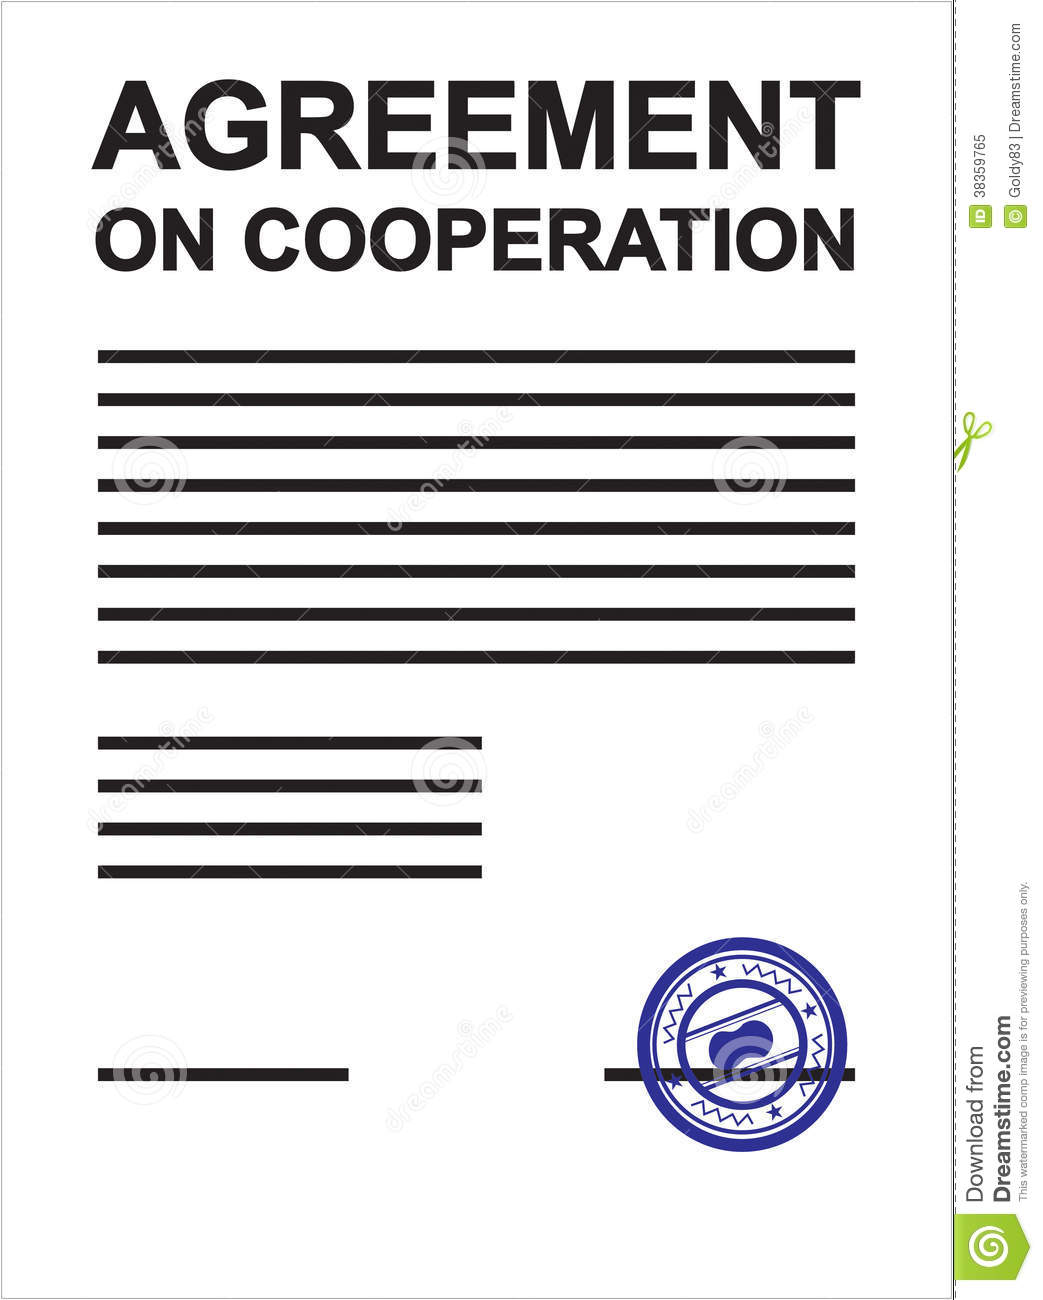 Agreement on Cooperation